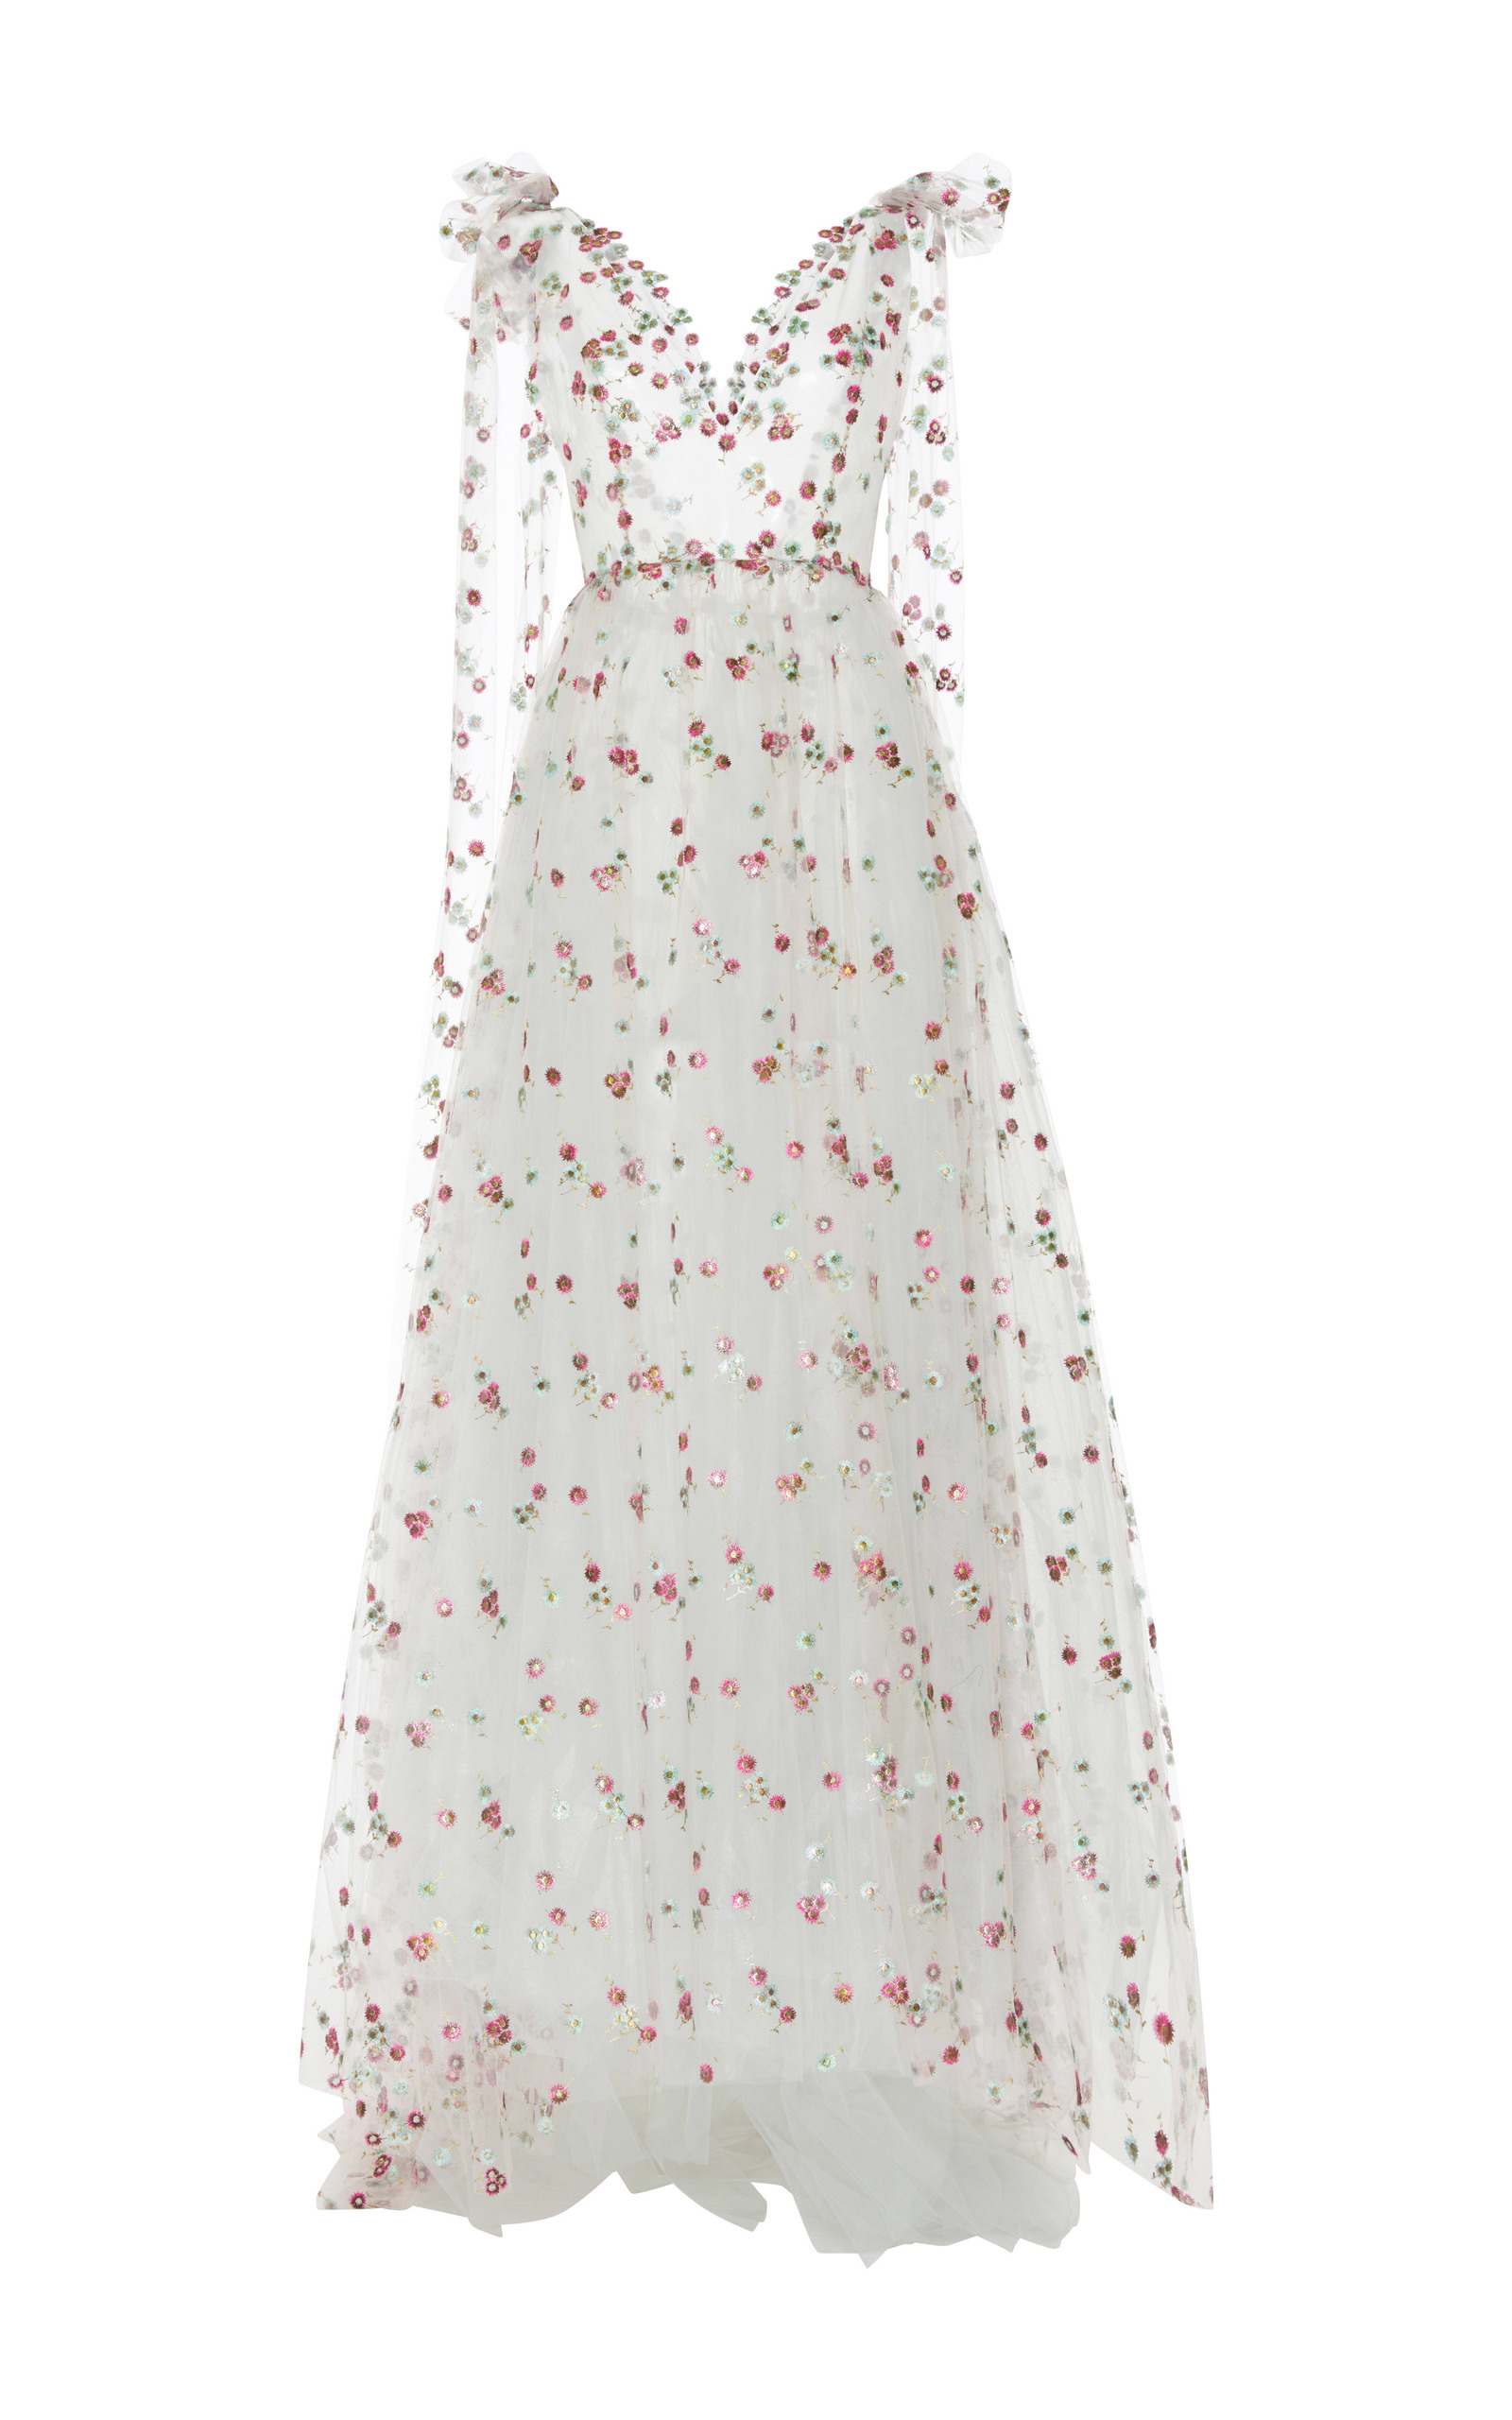 2c48101b1e Floral Embroidered Tulle Ball Gown by Luisa Beccaria   Moda Operandi